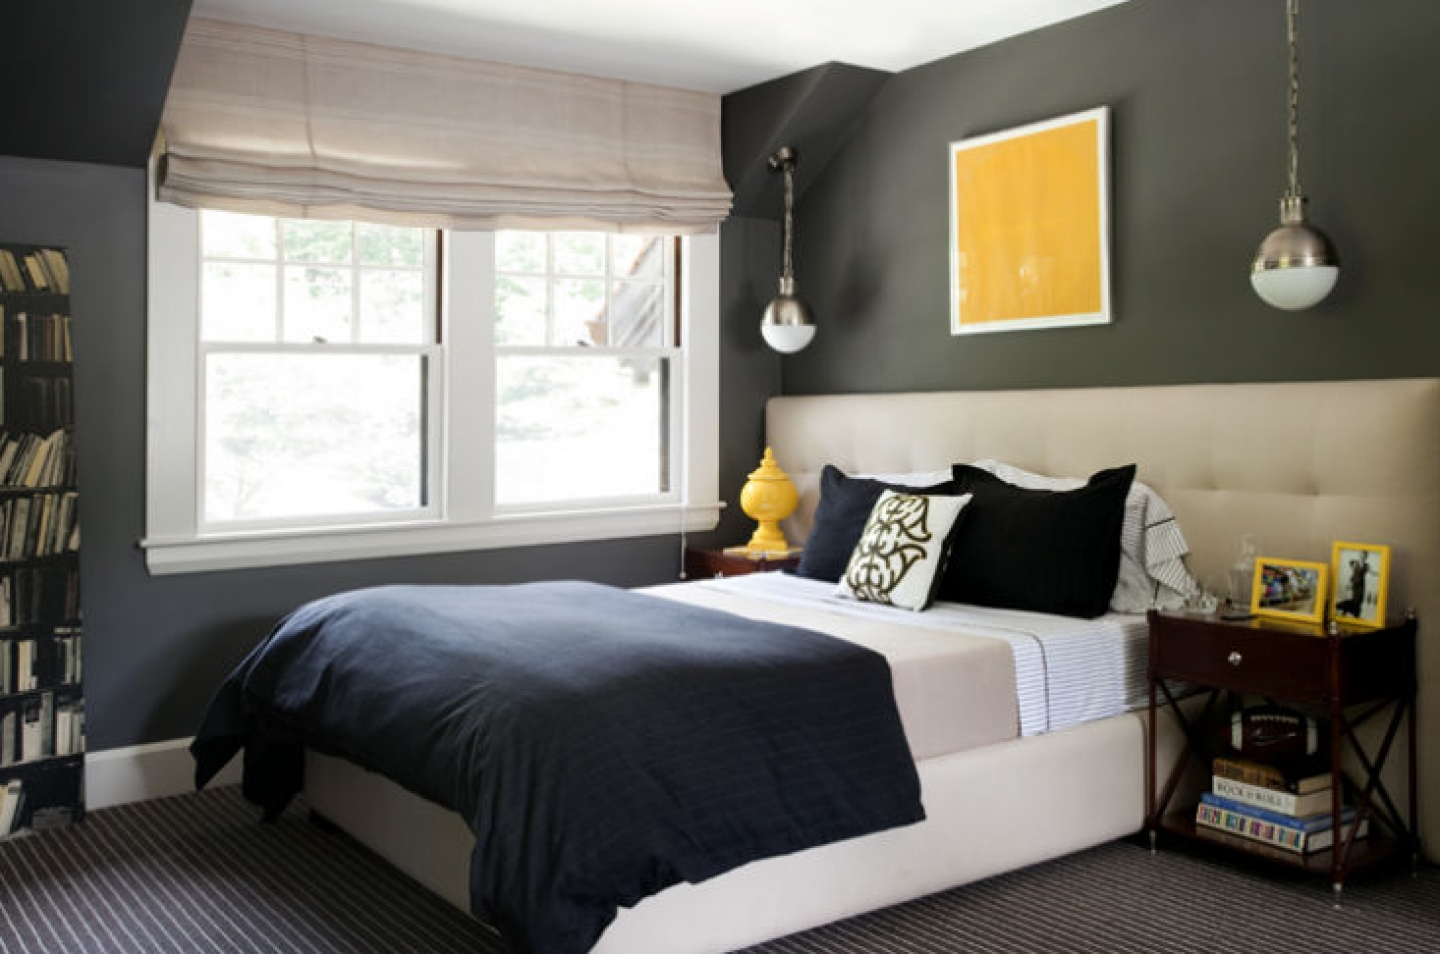 Bedroom with Gray Wall 1440 x 954